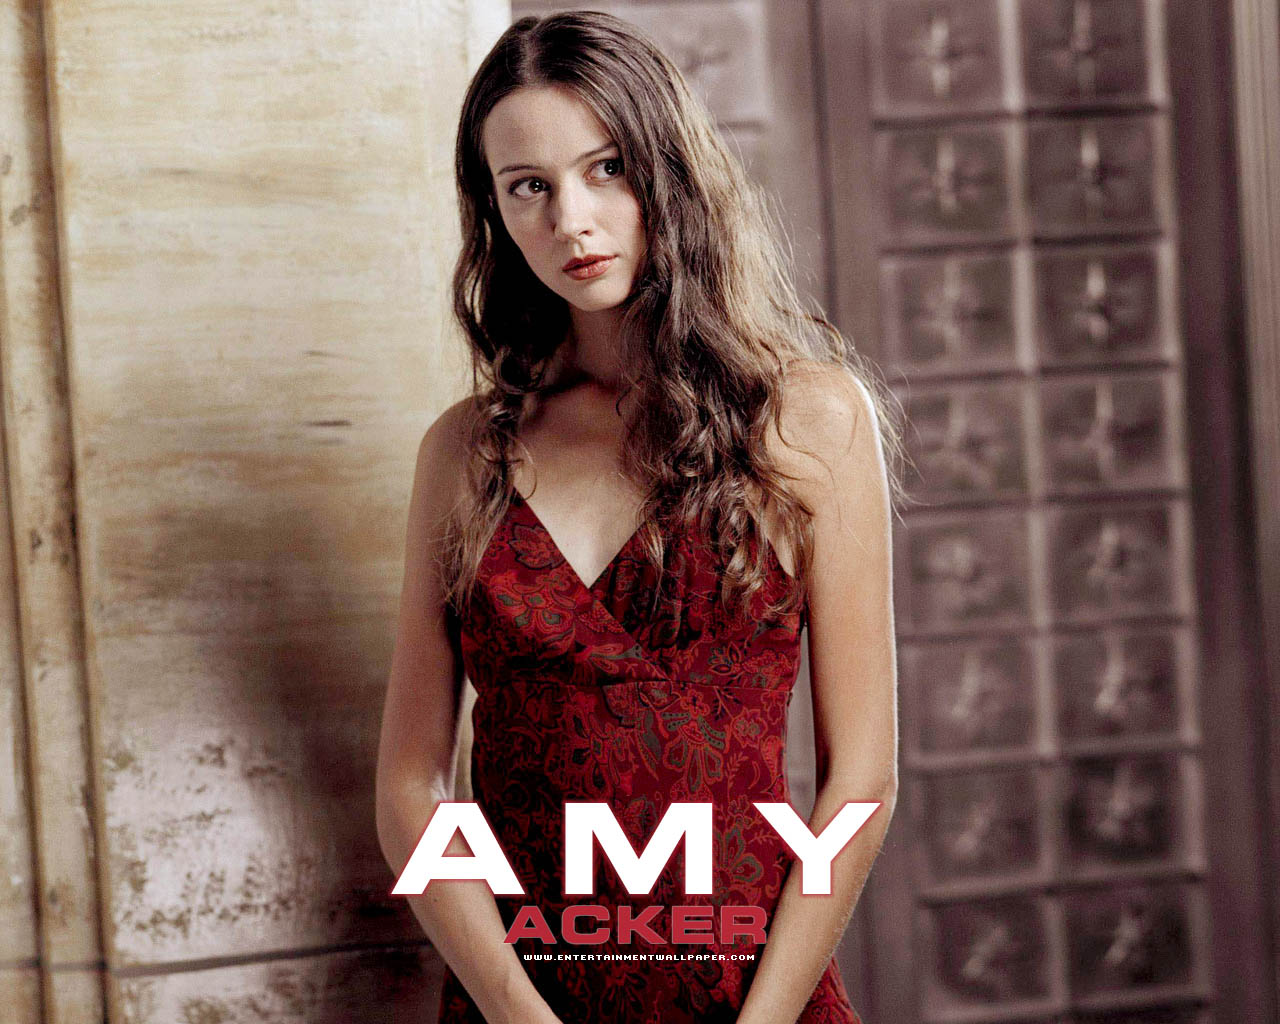 1280x1024 - Amy Acker Wallpapers 8